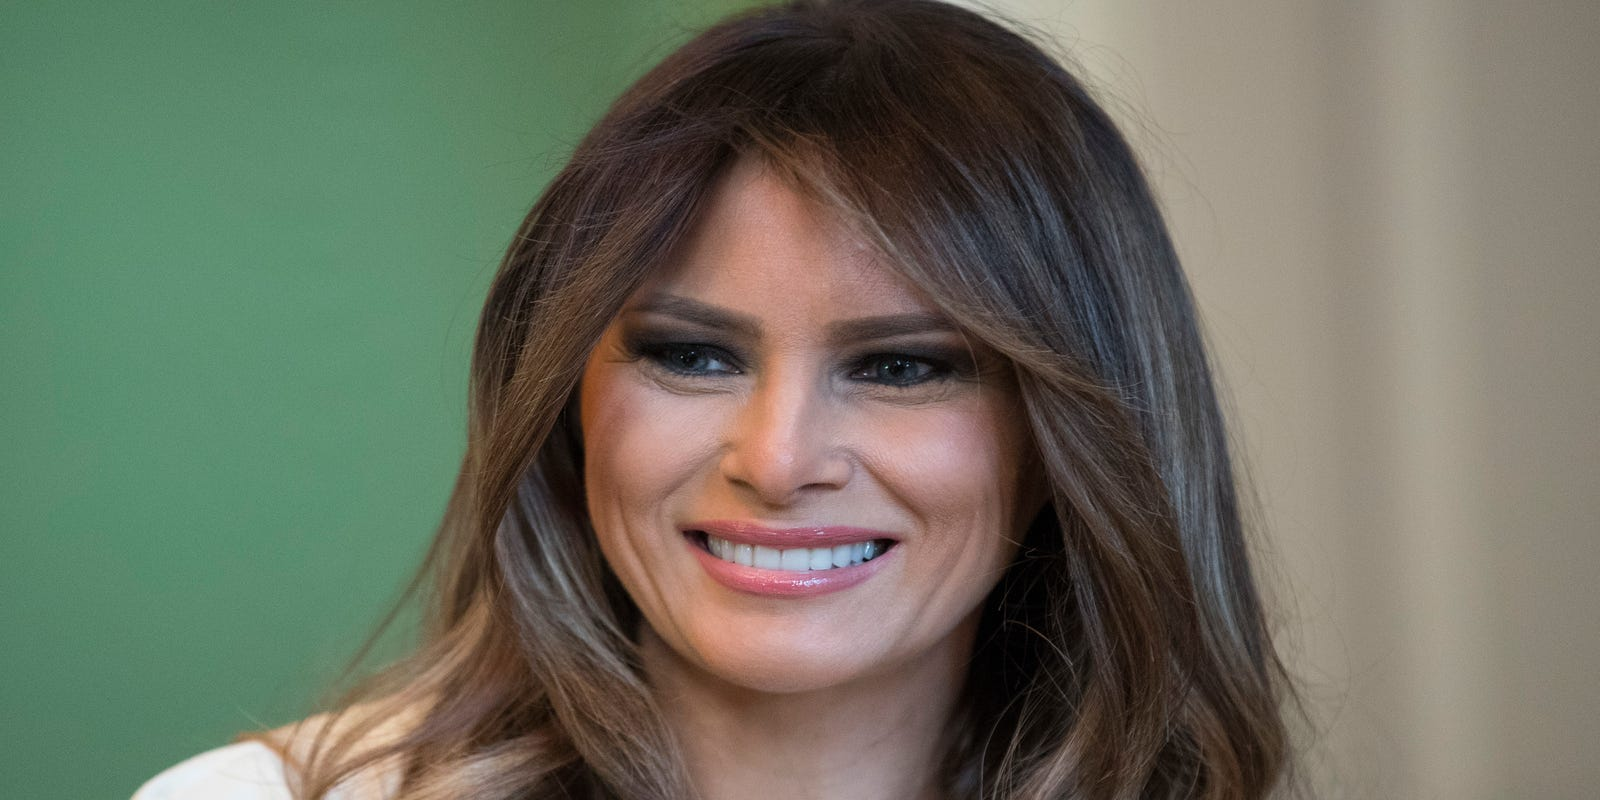 bf63f907254 Will we see more of first lady Melania Trump in 2018 than in 2017